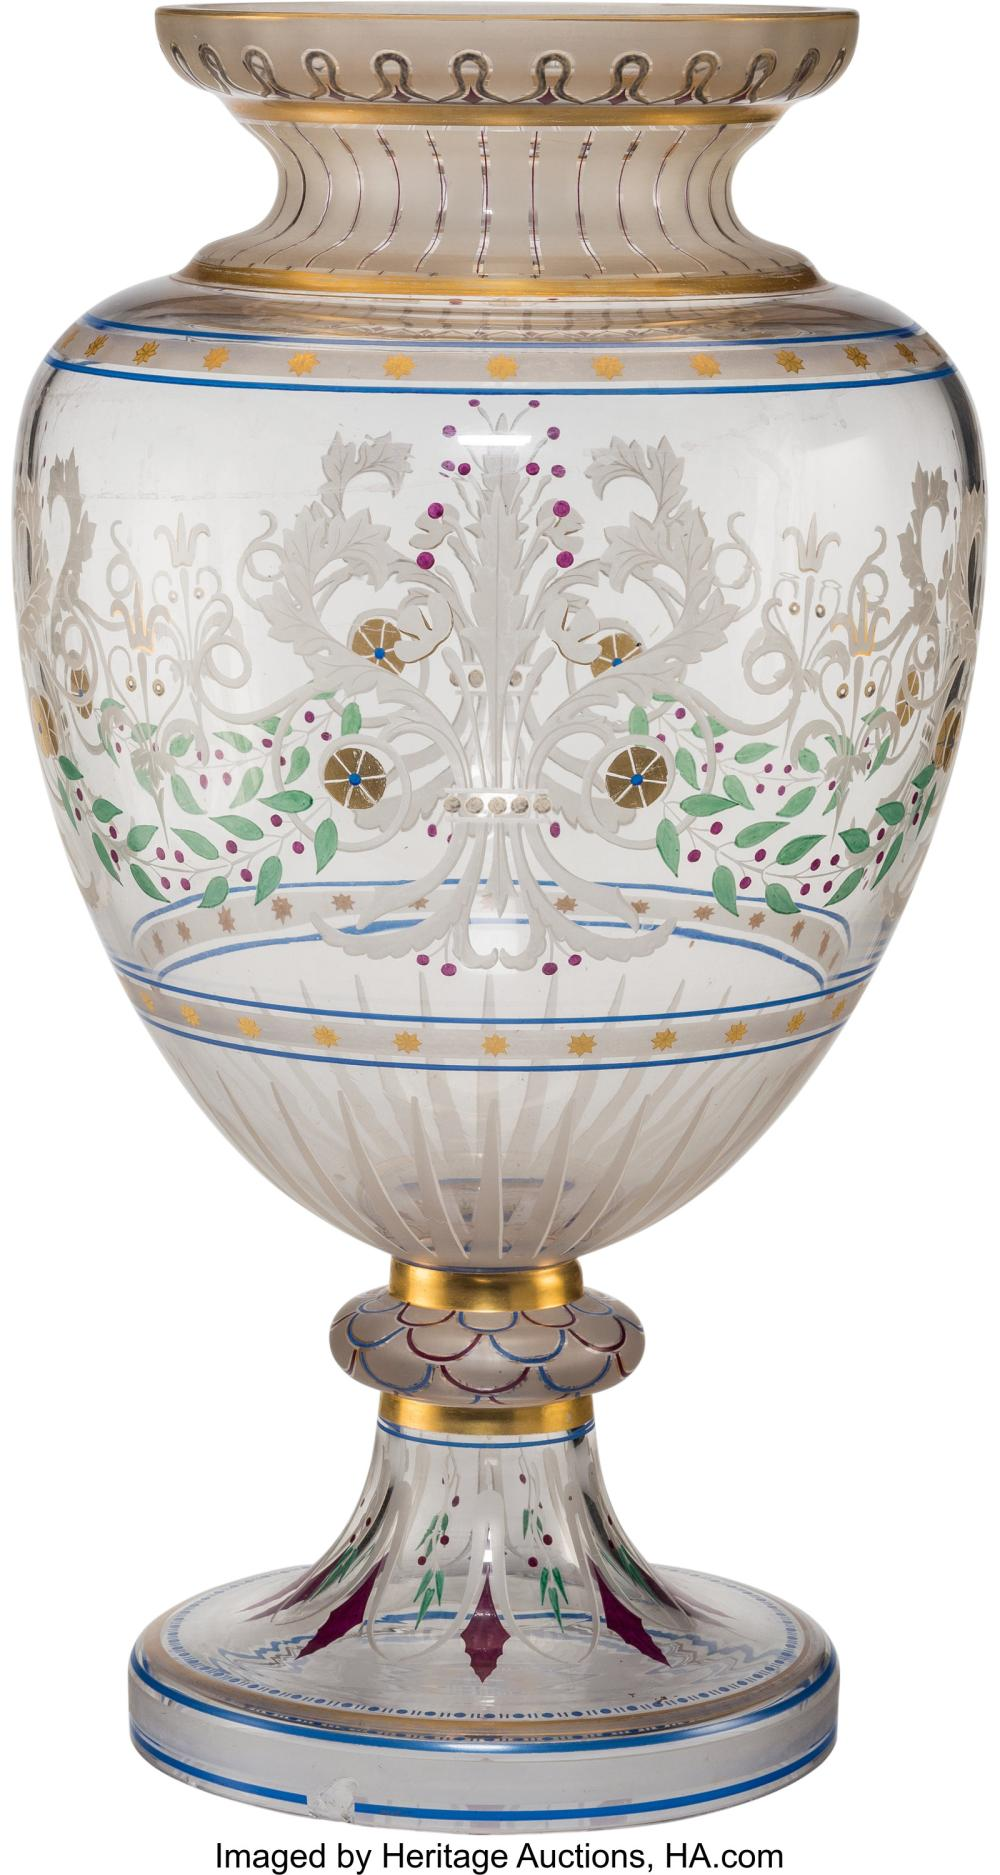 A French Etched and Enameled Glass Vase, late 19th century 19-1/4 x 11 x 11 inch